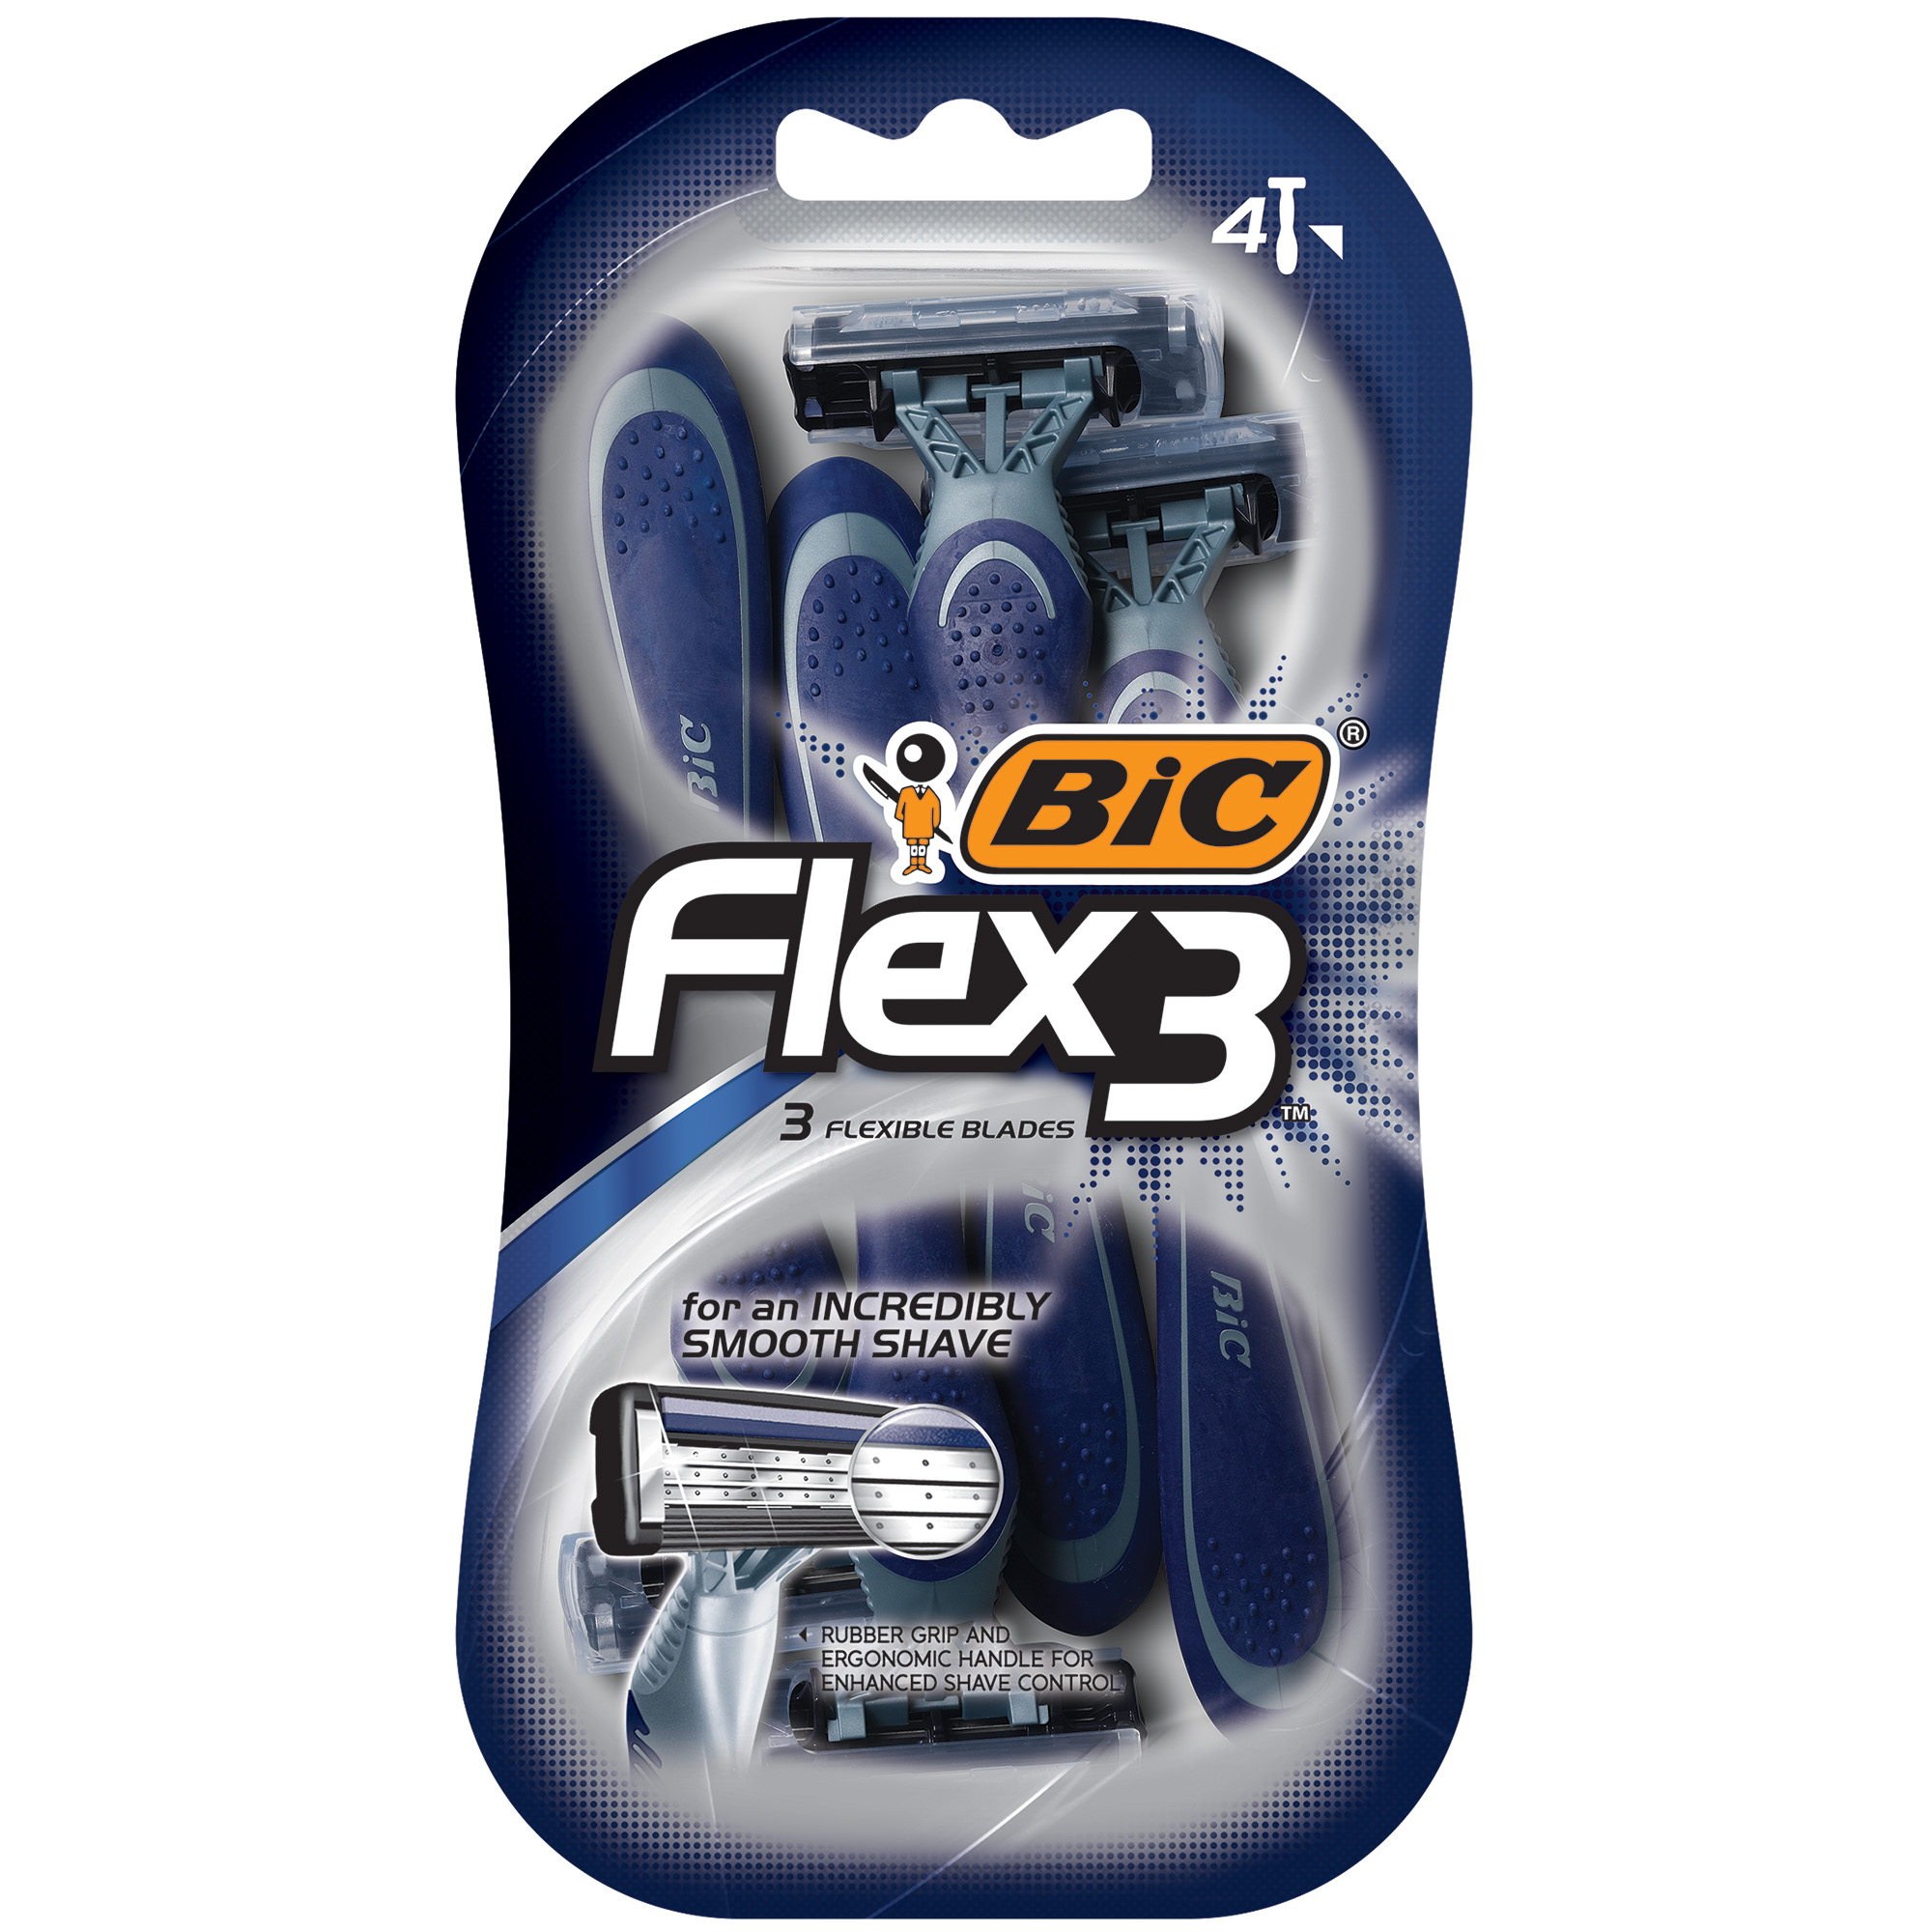 BIC Flex 3 Men's 3 Blade, Disposable Razor, 4-Count